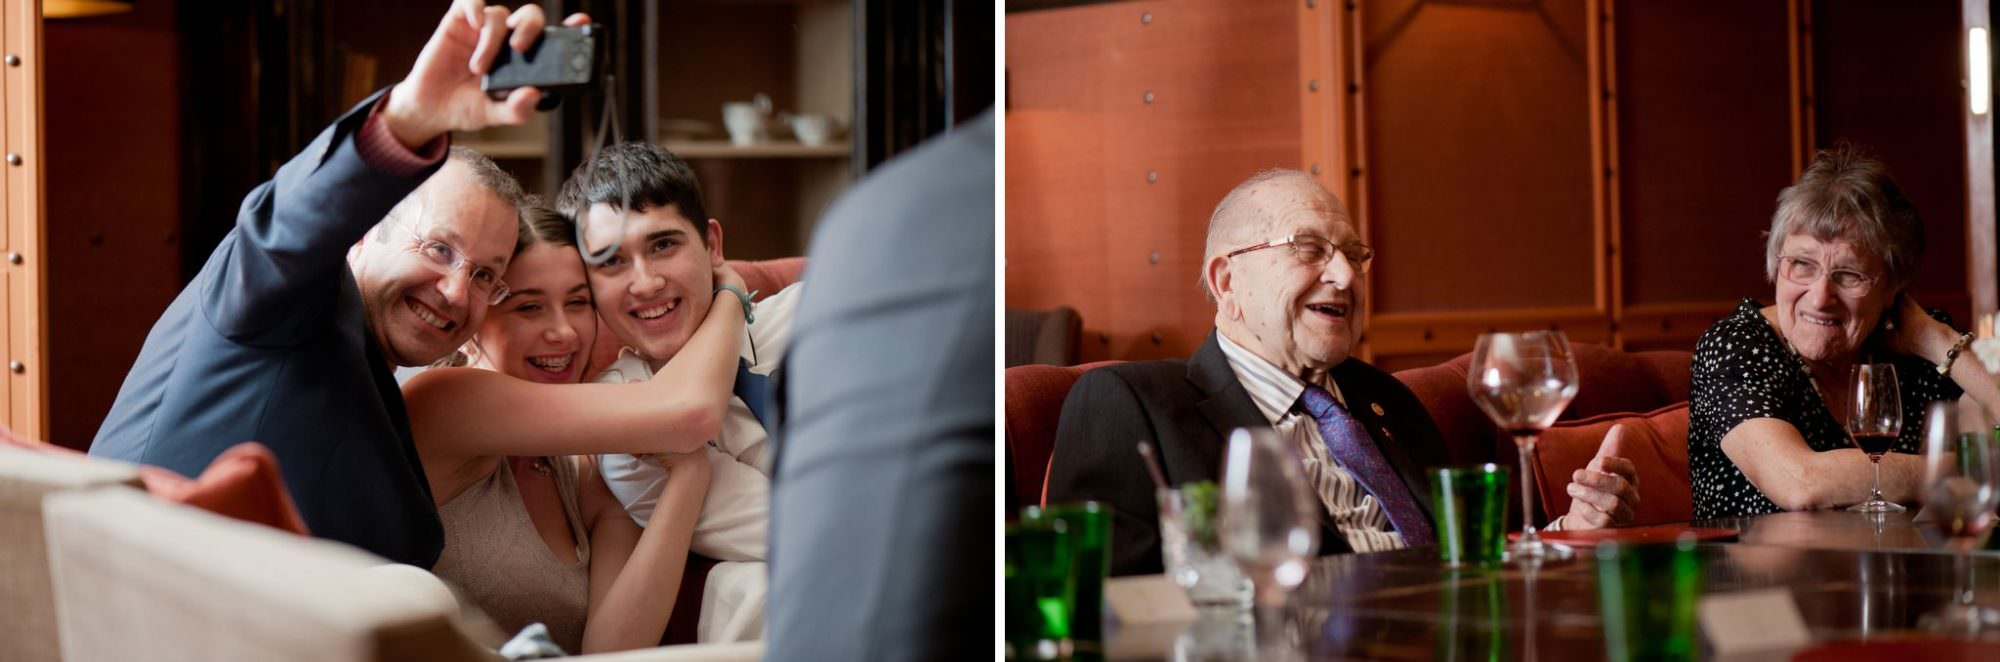 Limewood Hotel in Hampshire Event Photography